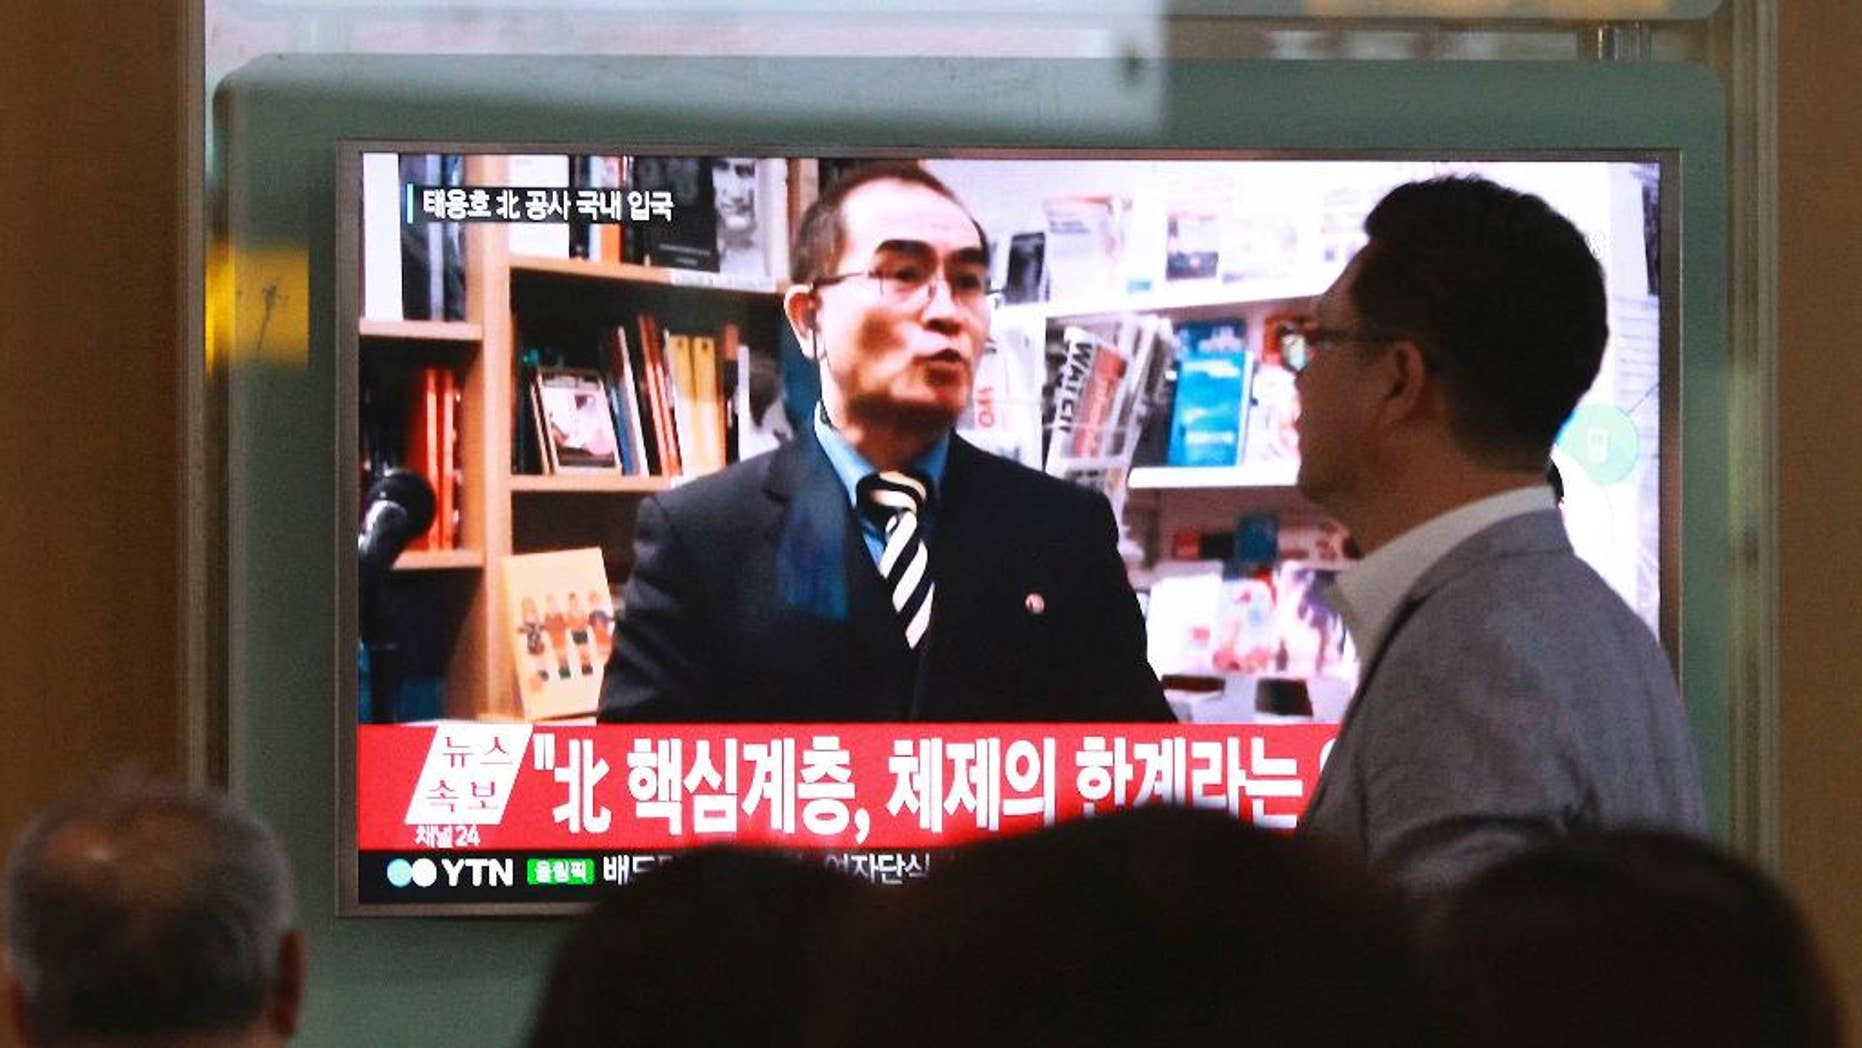 "FILE - In this Aug. 17, 2016 file photo, people watch a TV news program showing a file image of Thae Yong Ho, a high-profile North Korean defector, at Seoul Railway Station in Seoul, South Korea. Thae told on Monday, Dec. 19, 2016, South Korean lawmakers that he decided to flee because of disillusionment with what he describes as a ""tyrannical reign of terror"" by leader Kim Jong Un. The letters read ""A high-ranking North Korean diplomat."" (AP Photo/Ahn Young-joon, File)"